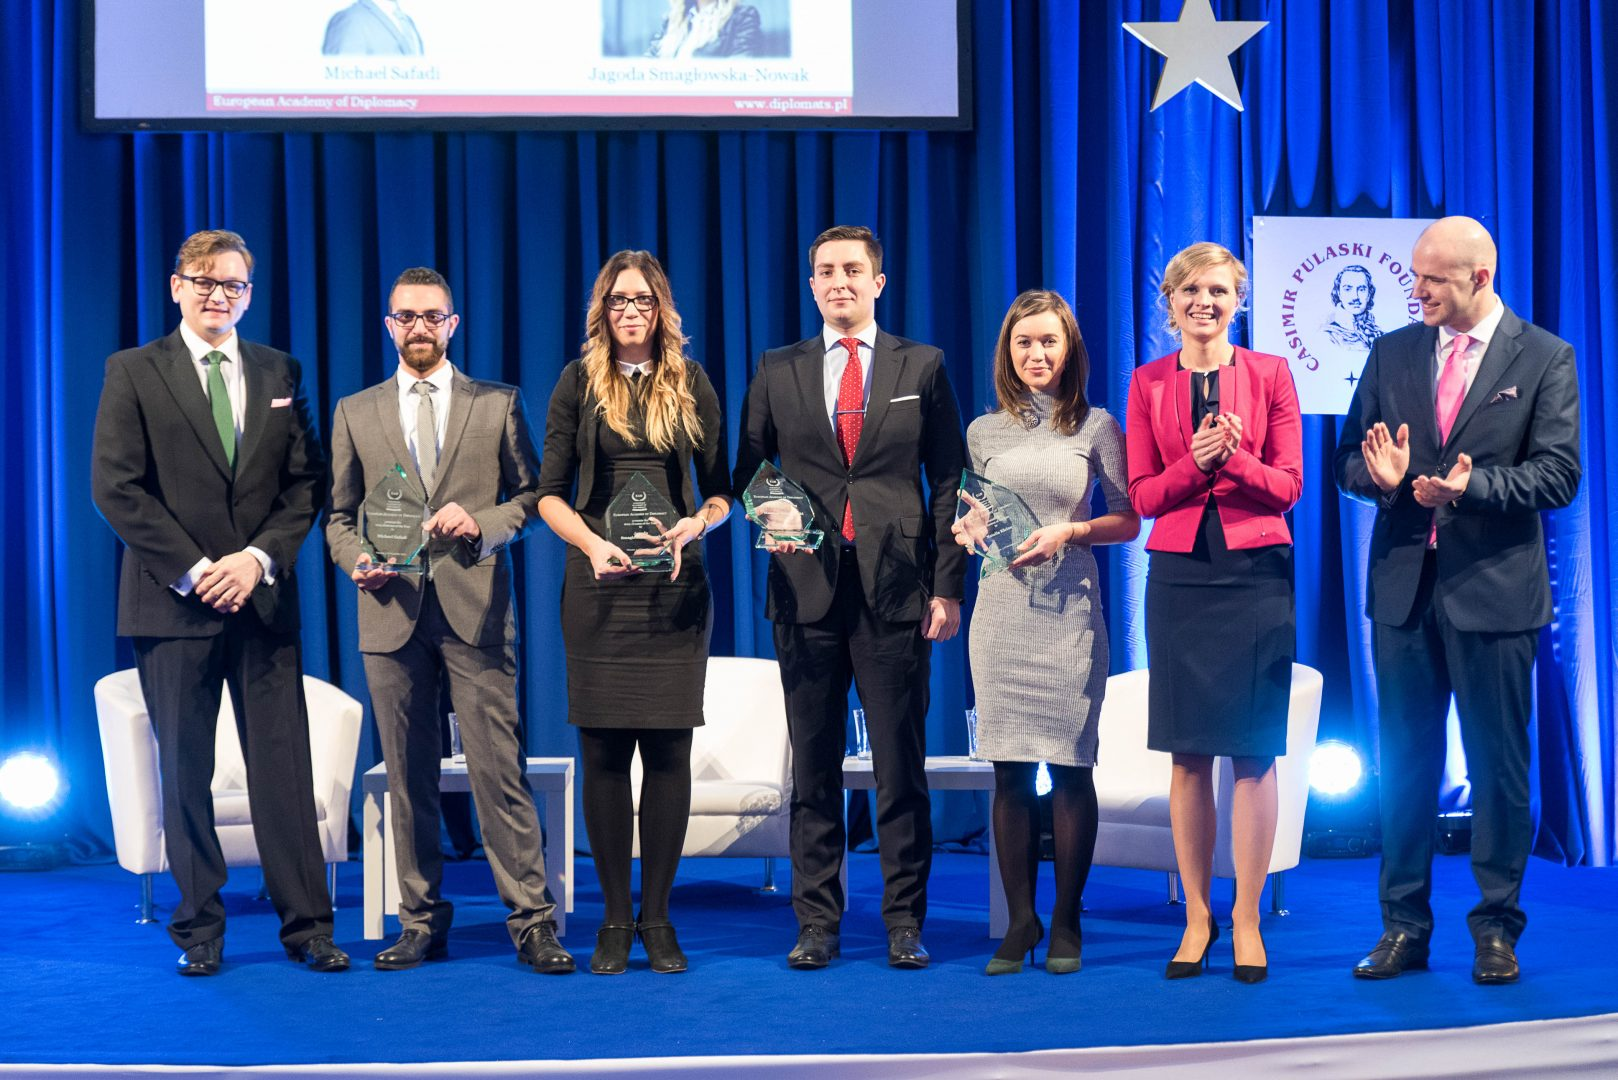 Nominate the 2016 Alumni of the Year